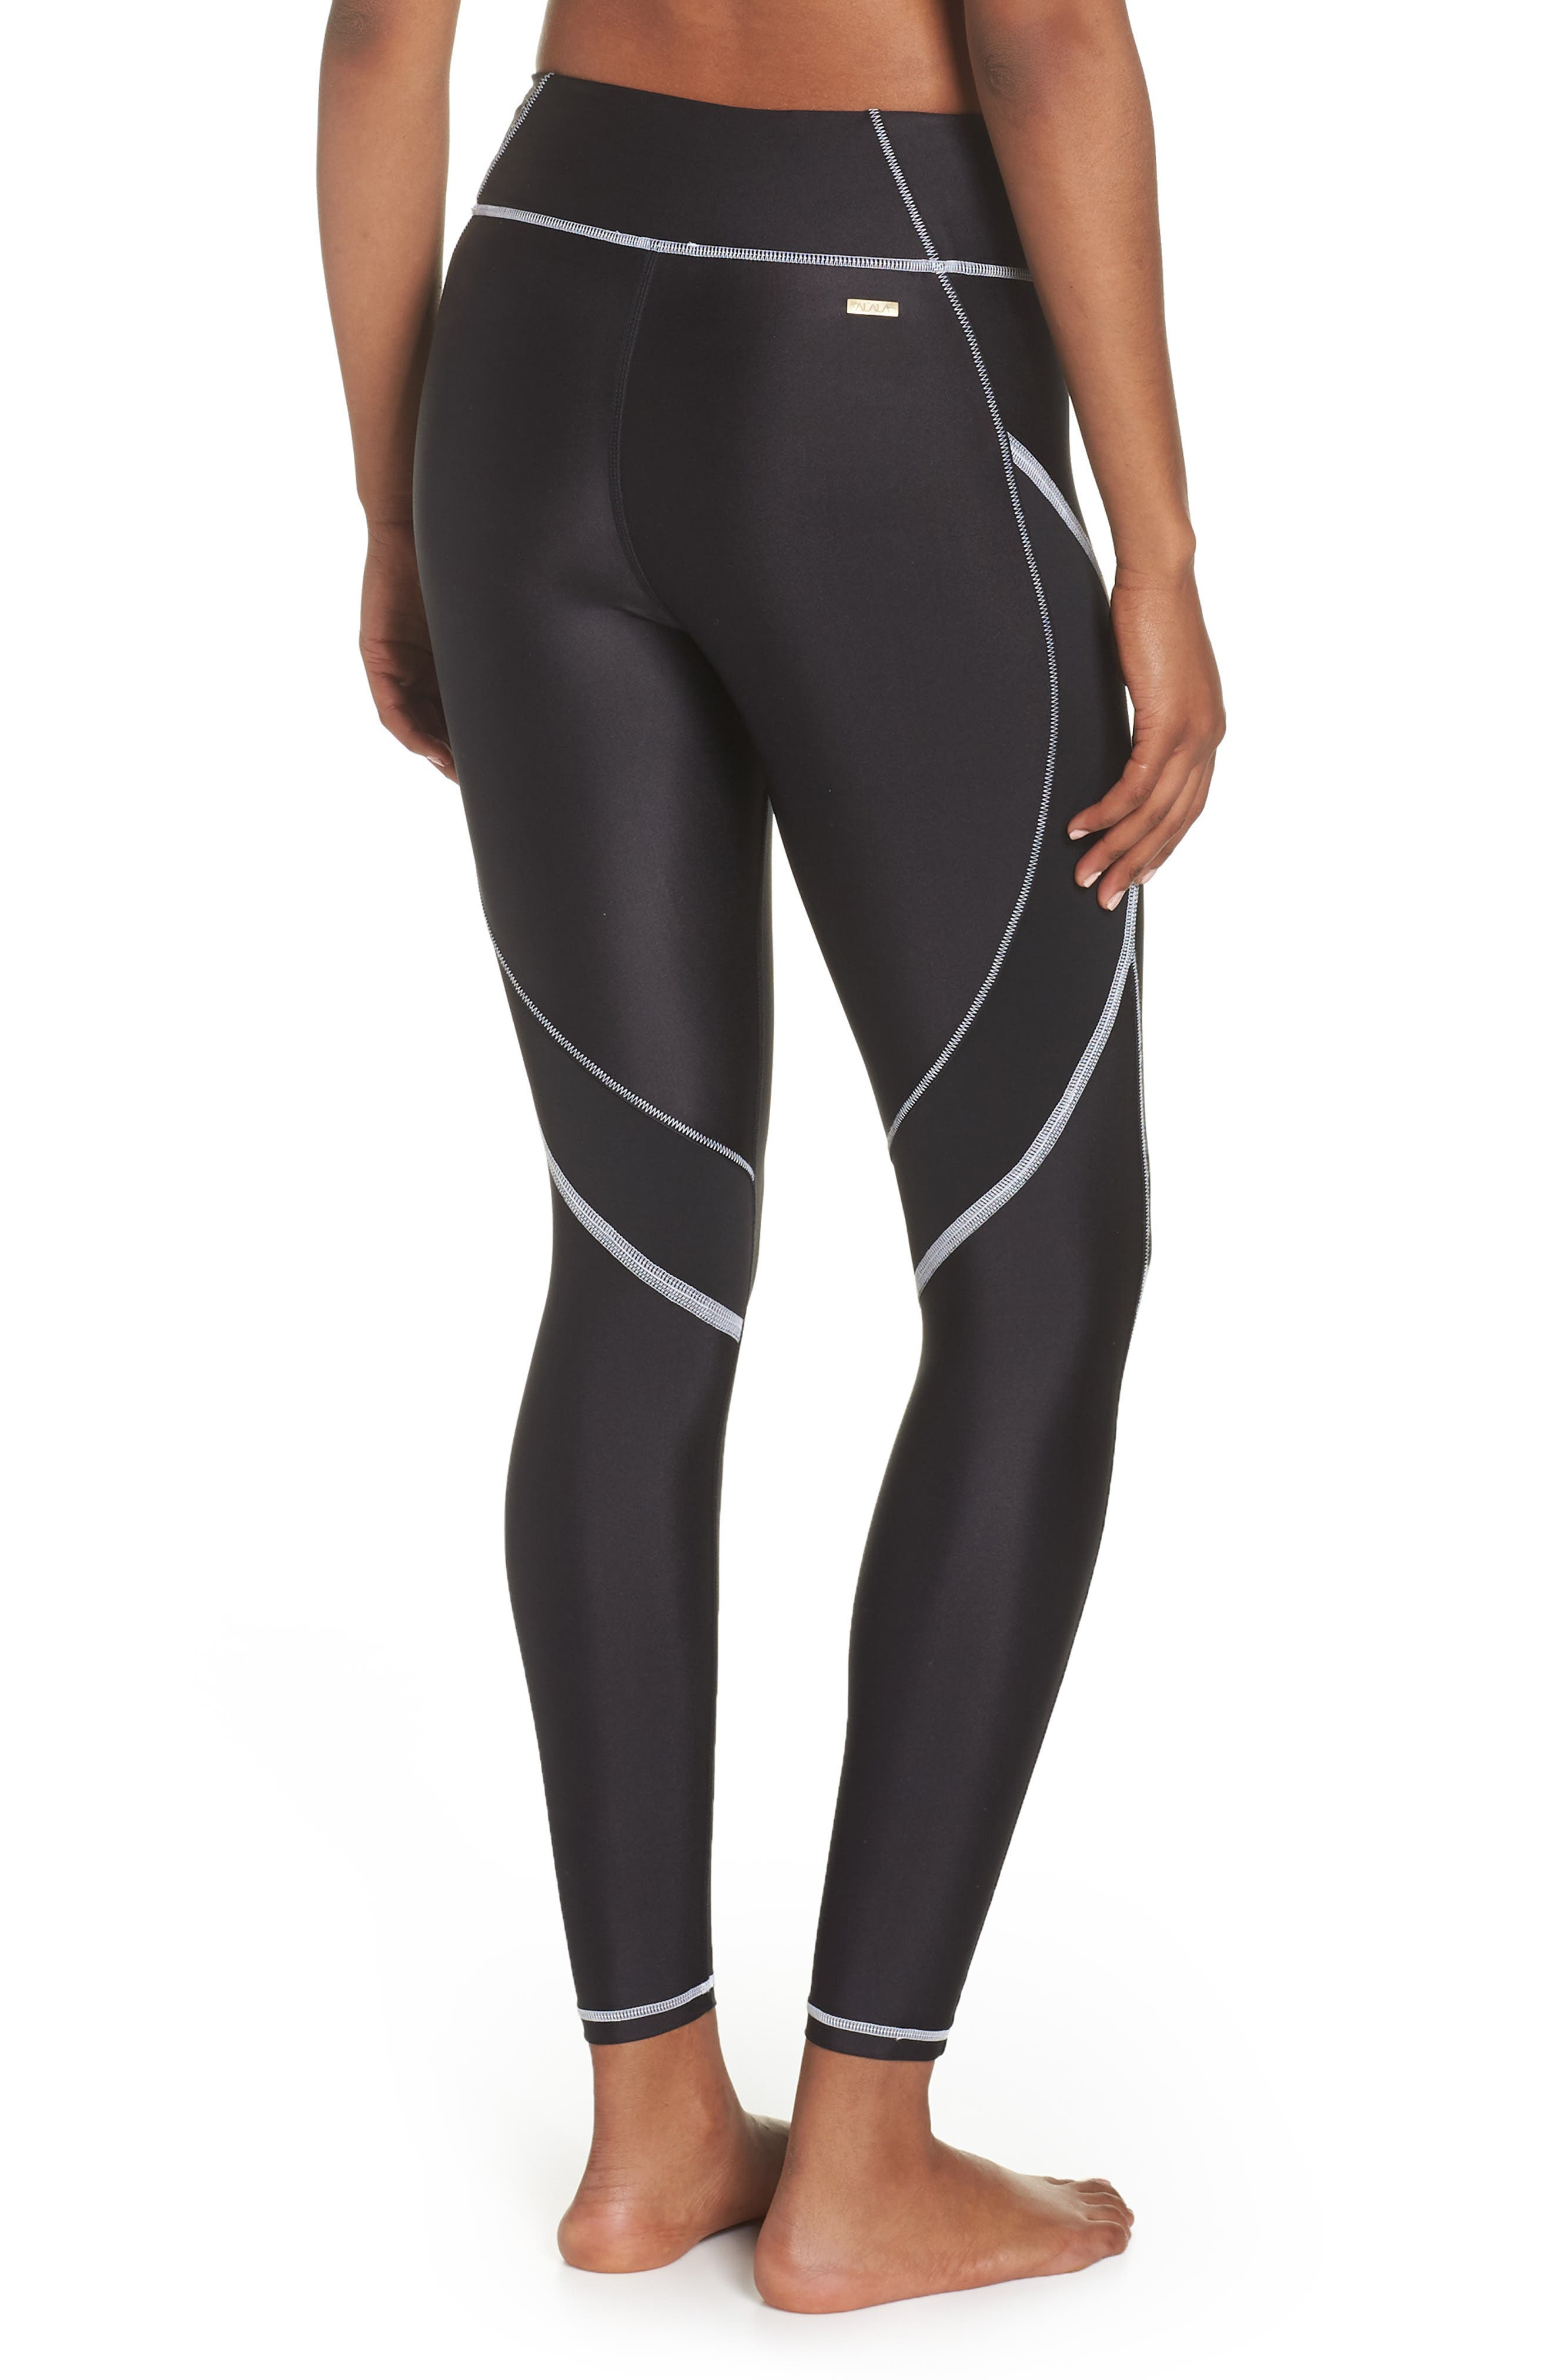 Surf Tights,                             Alternate thumbnail 2, color,                             BLACK/ WHITE